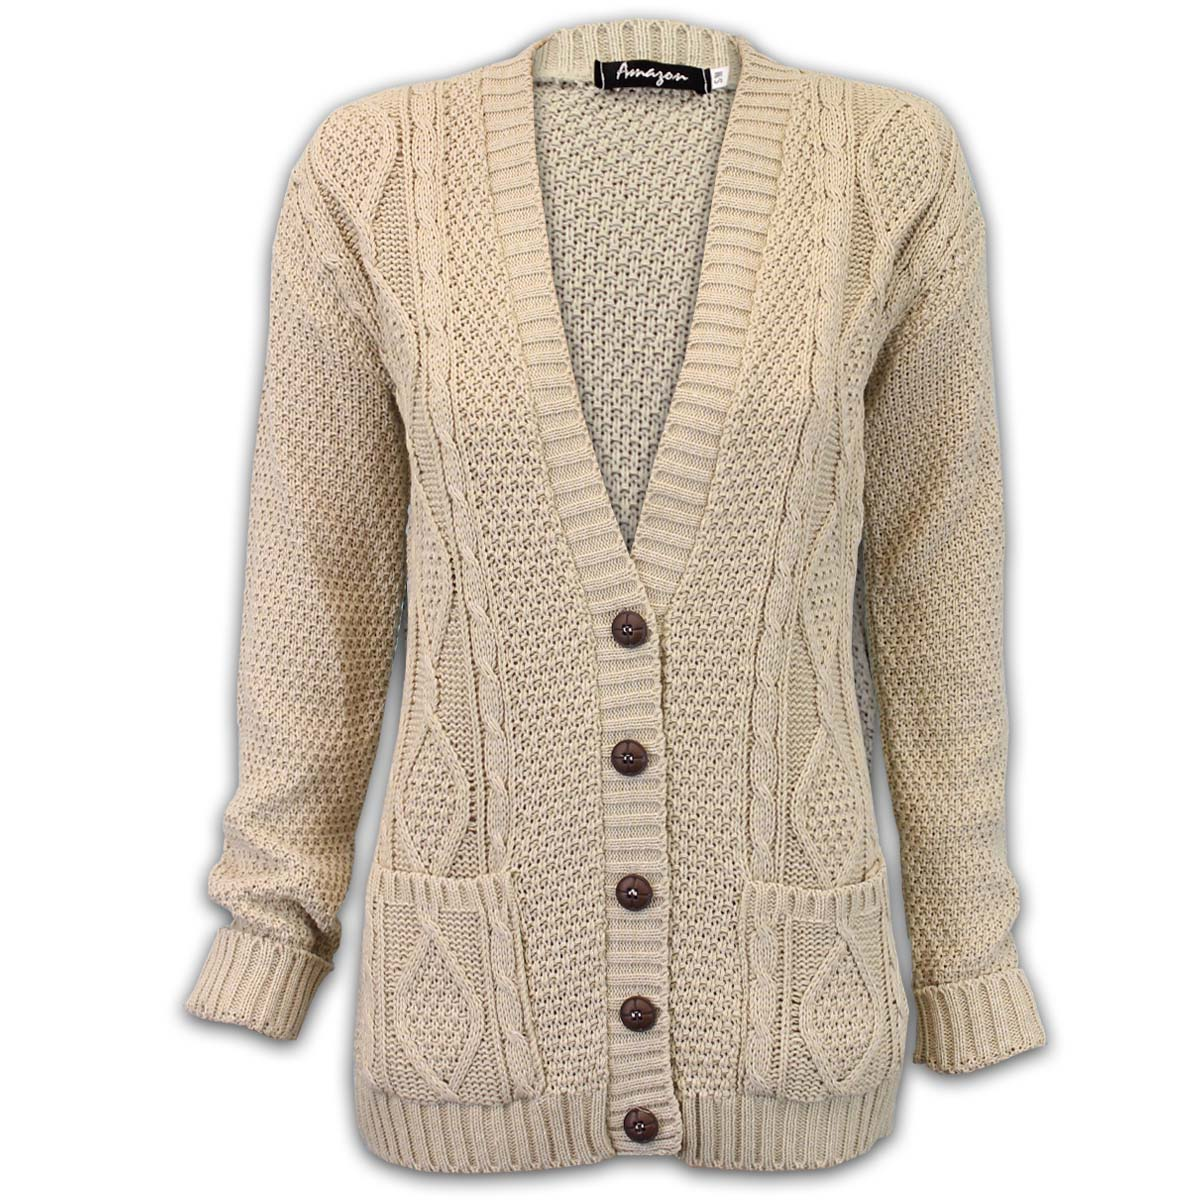 Women's Gray Chunky Cable Knit Cardigan £42 £ 20 + £ shipping From River Island Price last checked 3 days, 4 hours ago Product prices and availability are accurate as of the date/time indicated and are subject to change.